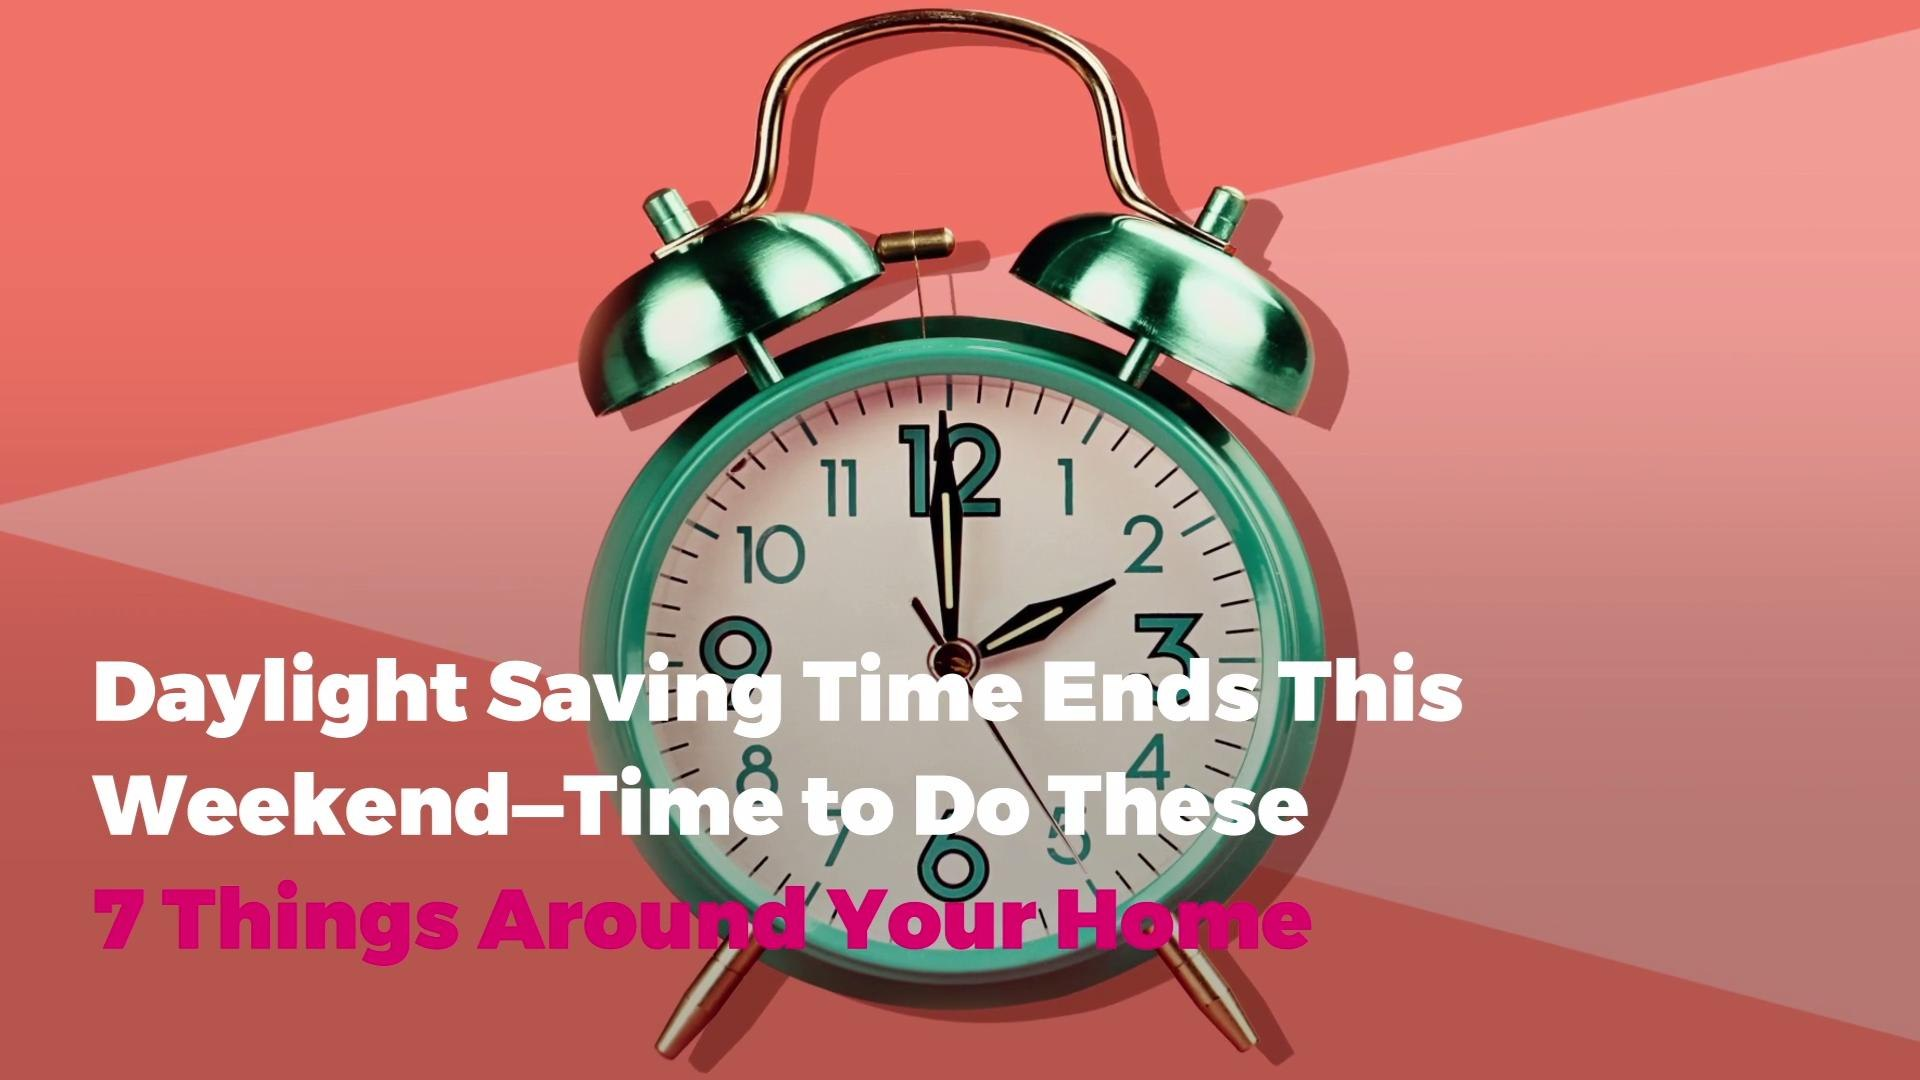 Daylight Saving Time Ends This Weekend—Time to Do These 7 Things Around Your Home